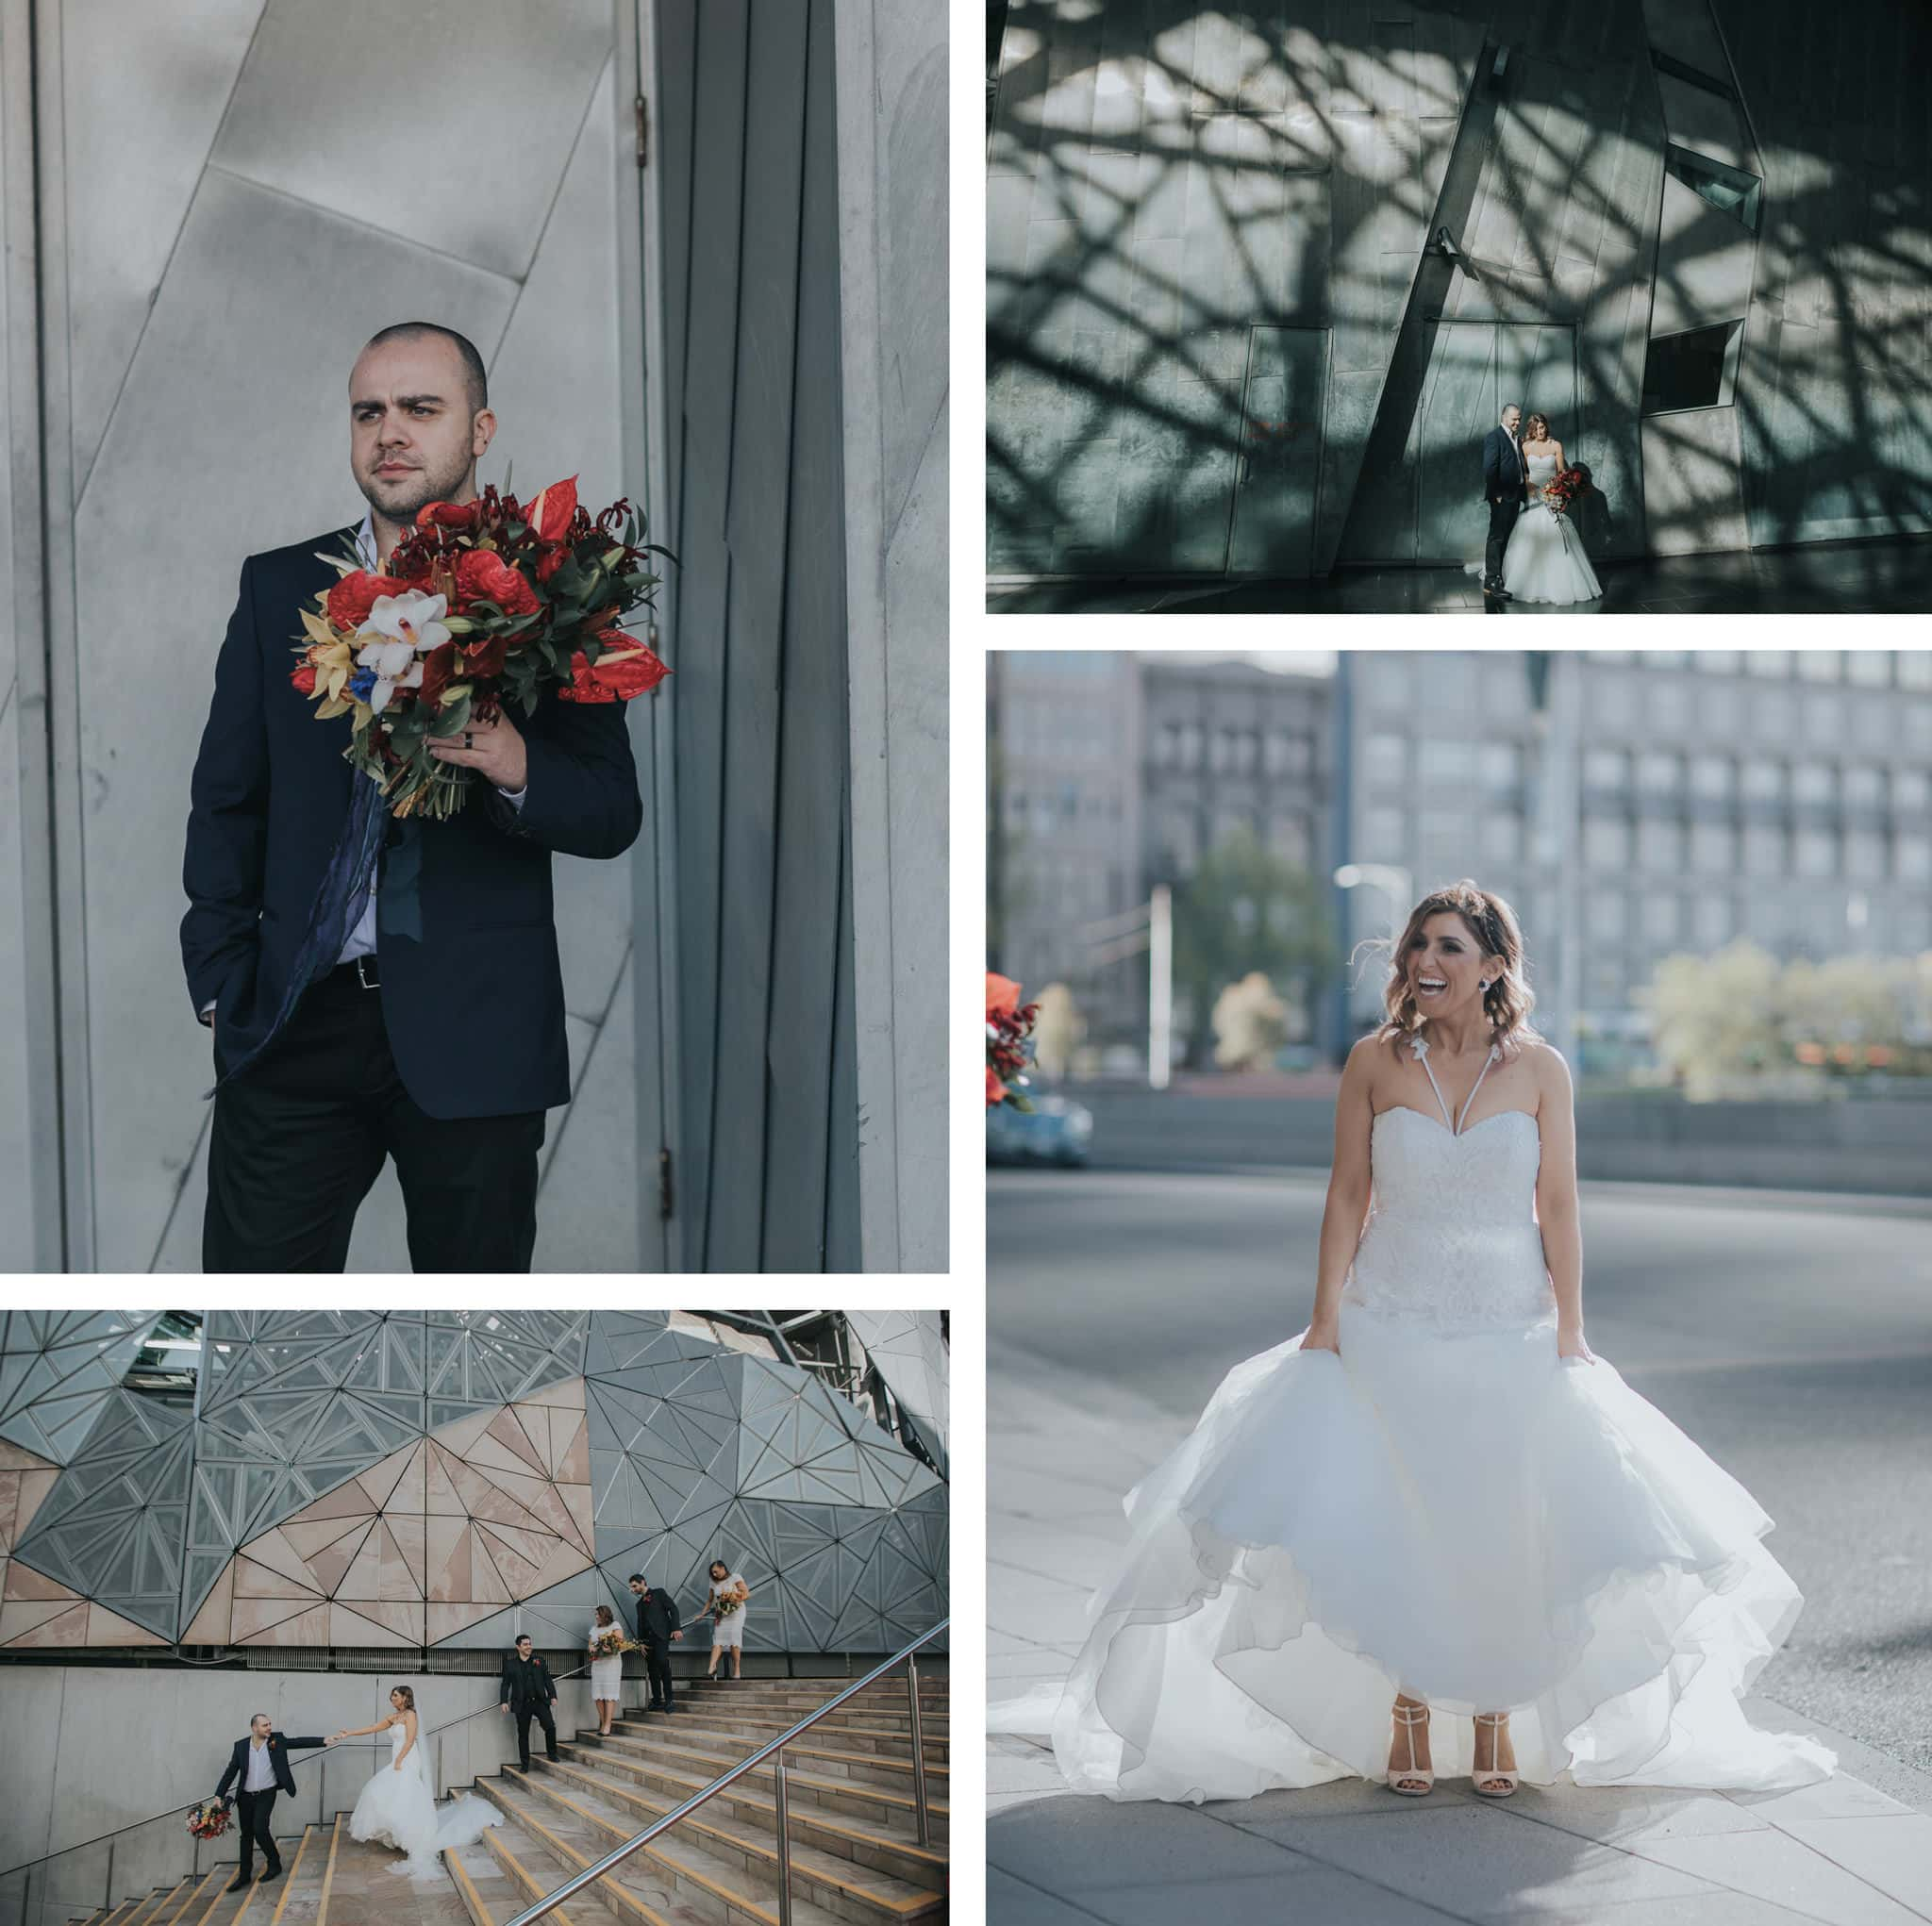 Wedding at Federation Square in Melbourne CBD photographed by Melbourne Photographer